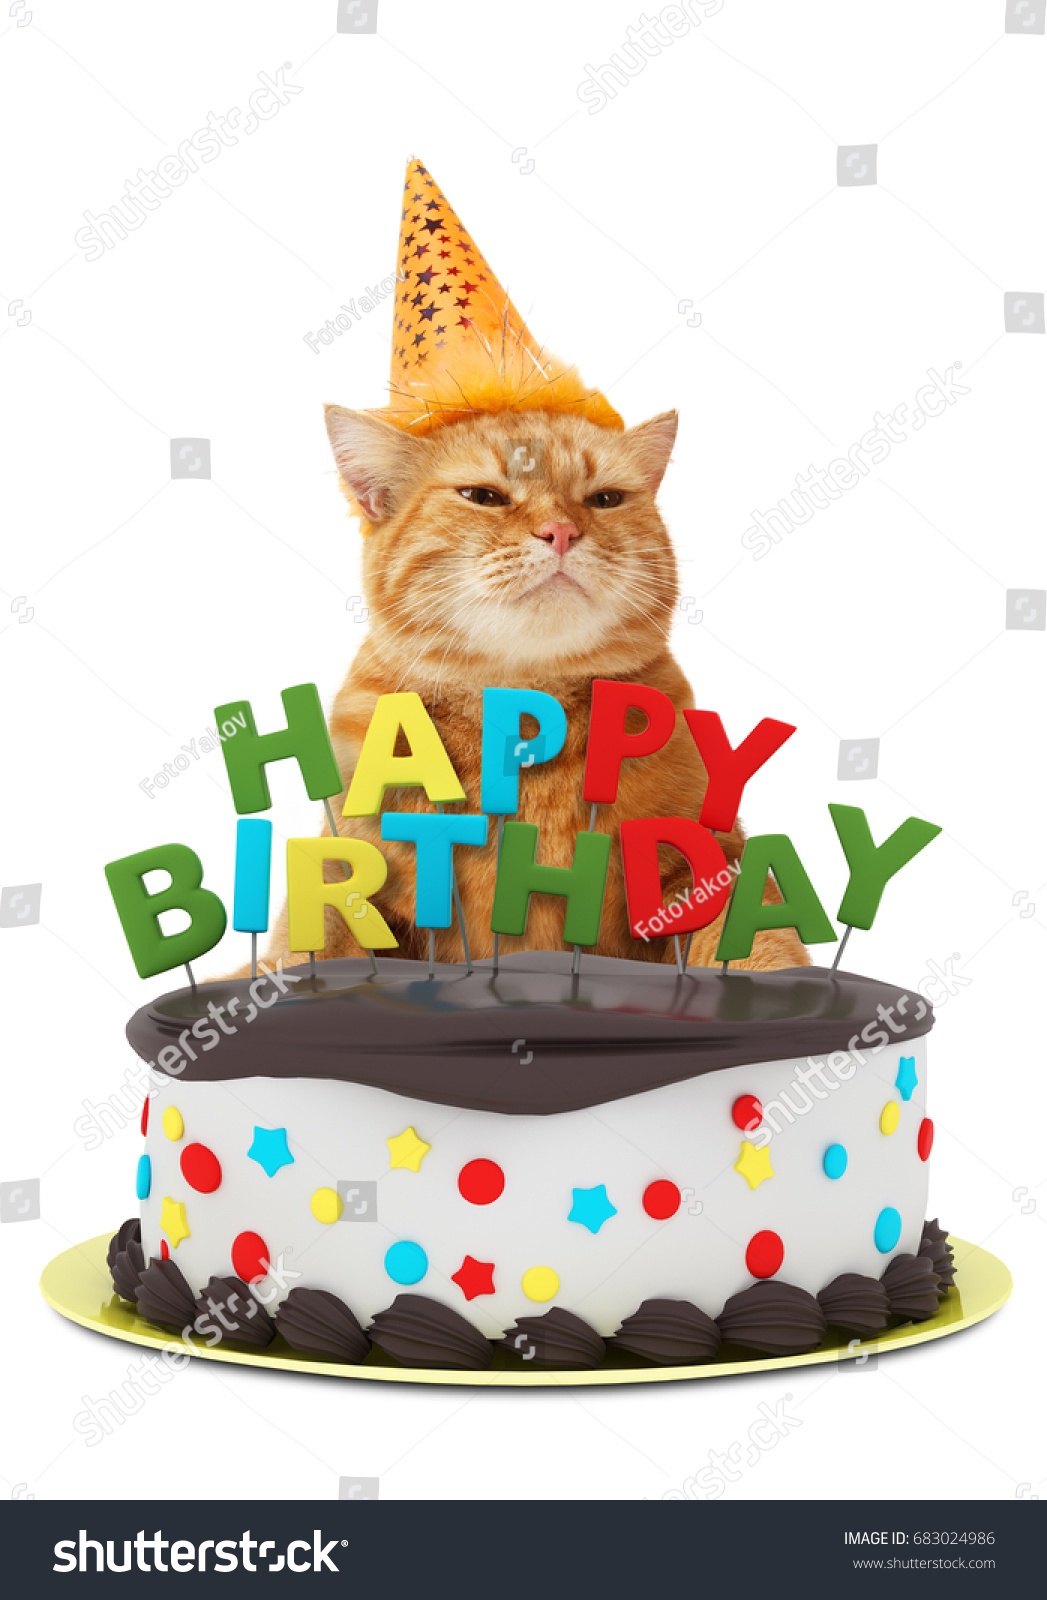 Funny Cat With Happy Birthday Cake Wearing A Party Hat Isolated On White Background